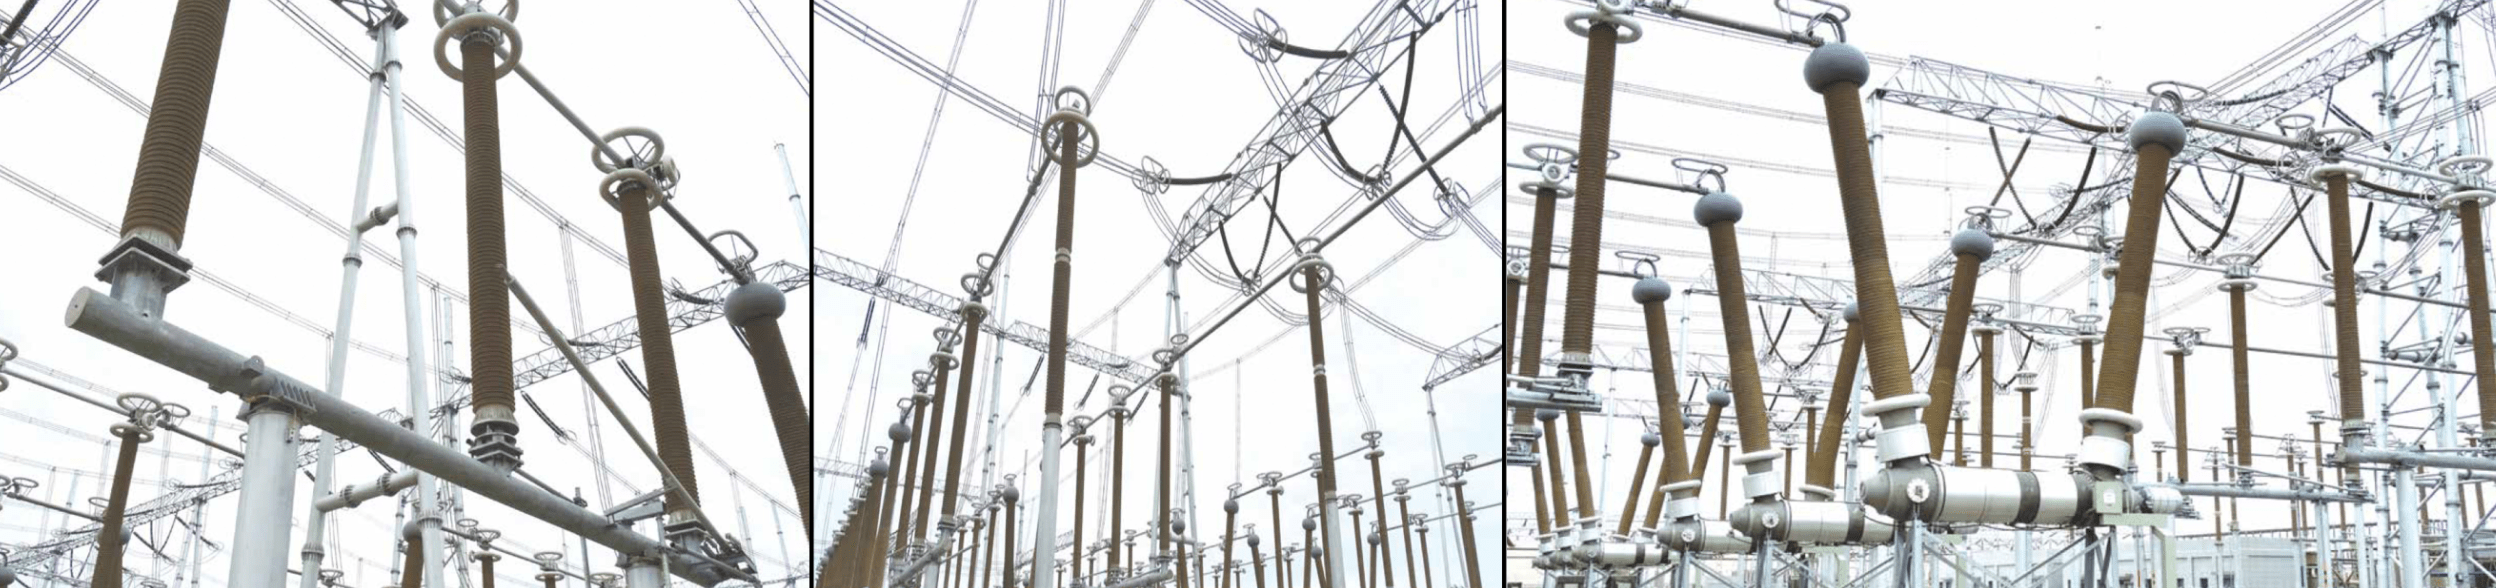 Shazhou Will Serve as China's 'Demonstration' Project for All-Composite-Insulated Substation substation Shazhou Will Serve as China's 'Demonstration' Project for All-Composite-Insulated Substation Screen Shot 2016 07 20 at 13